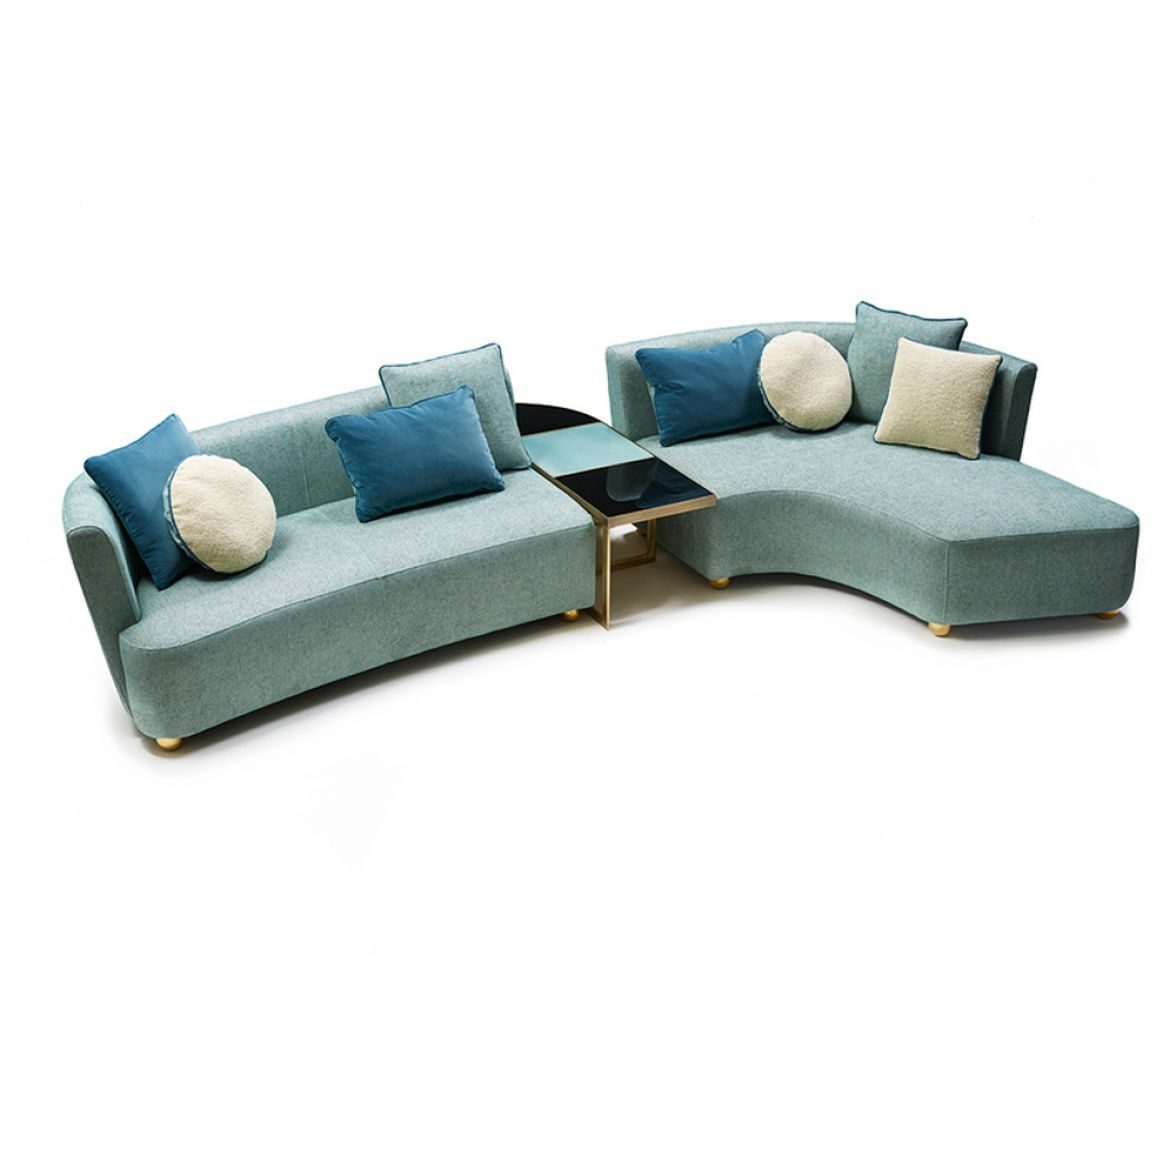 Baia sectional sofa